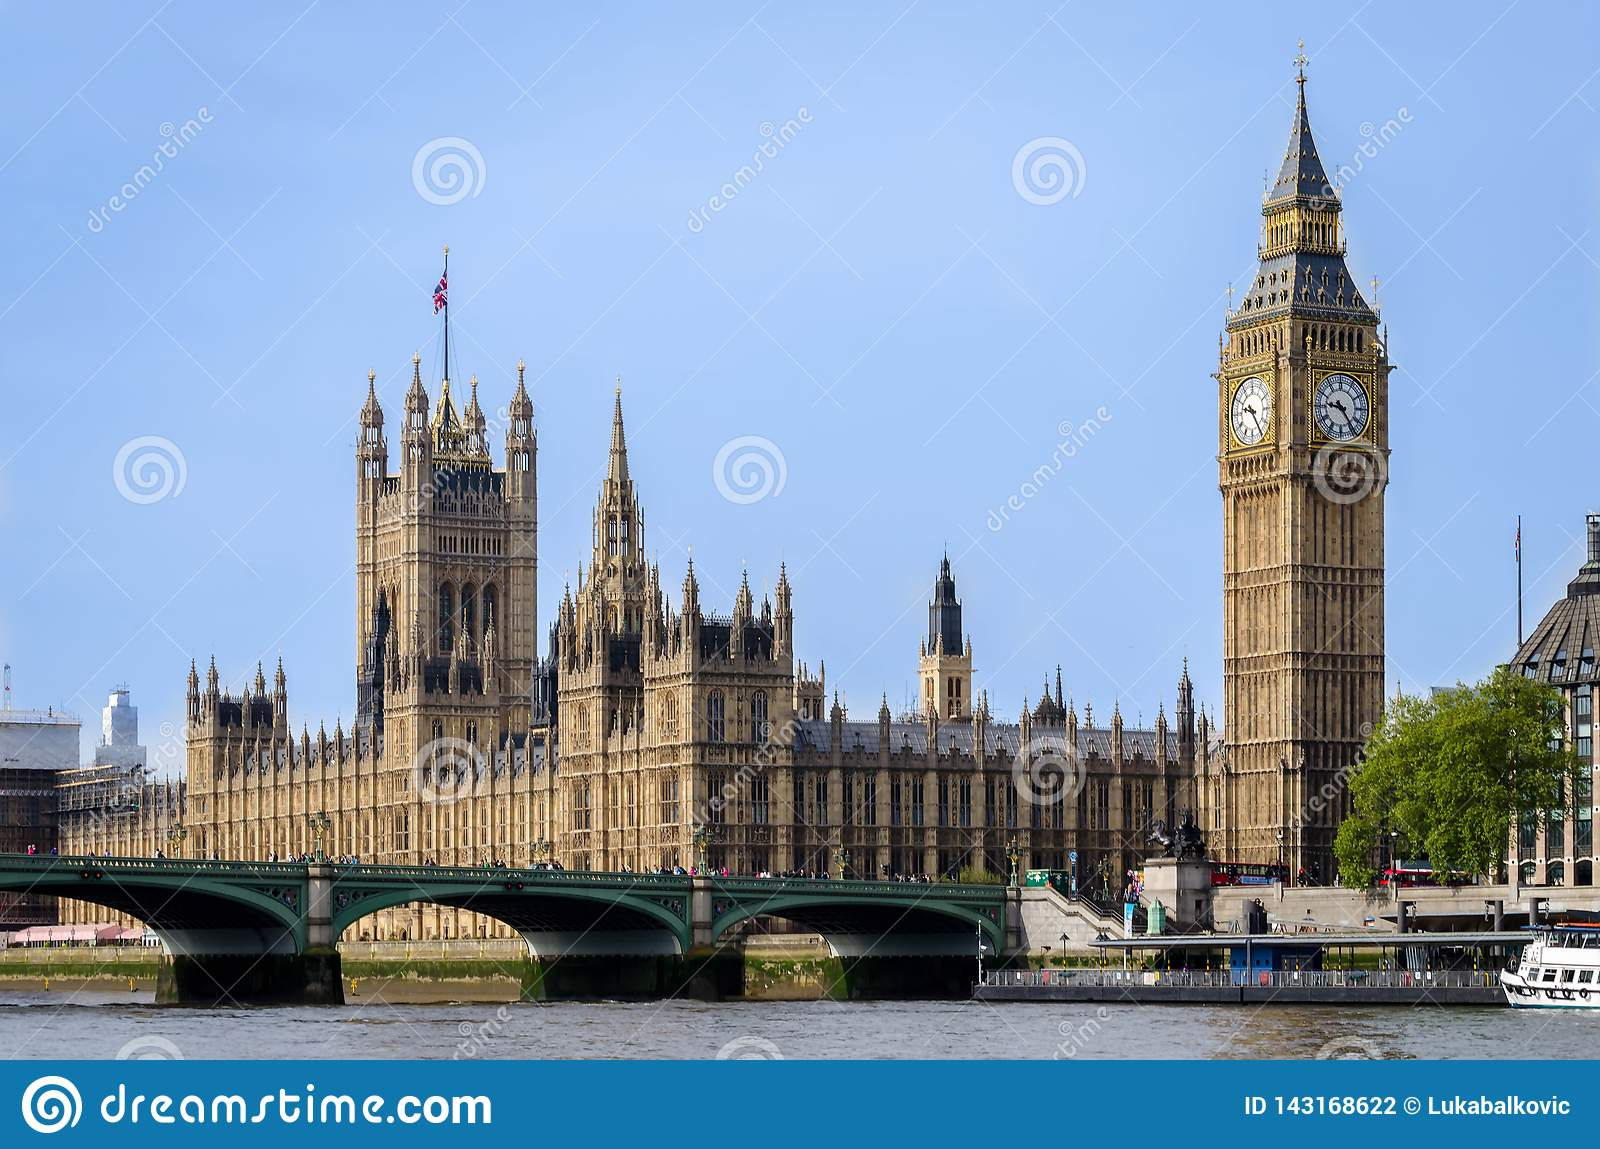 London city / England: Big Ben and Parliament building looking across river Thames